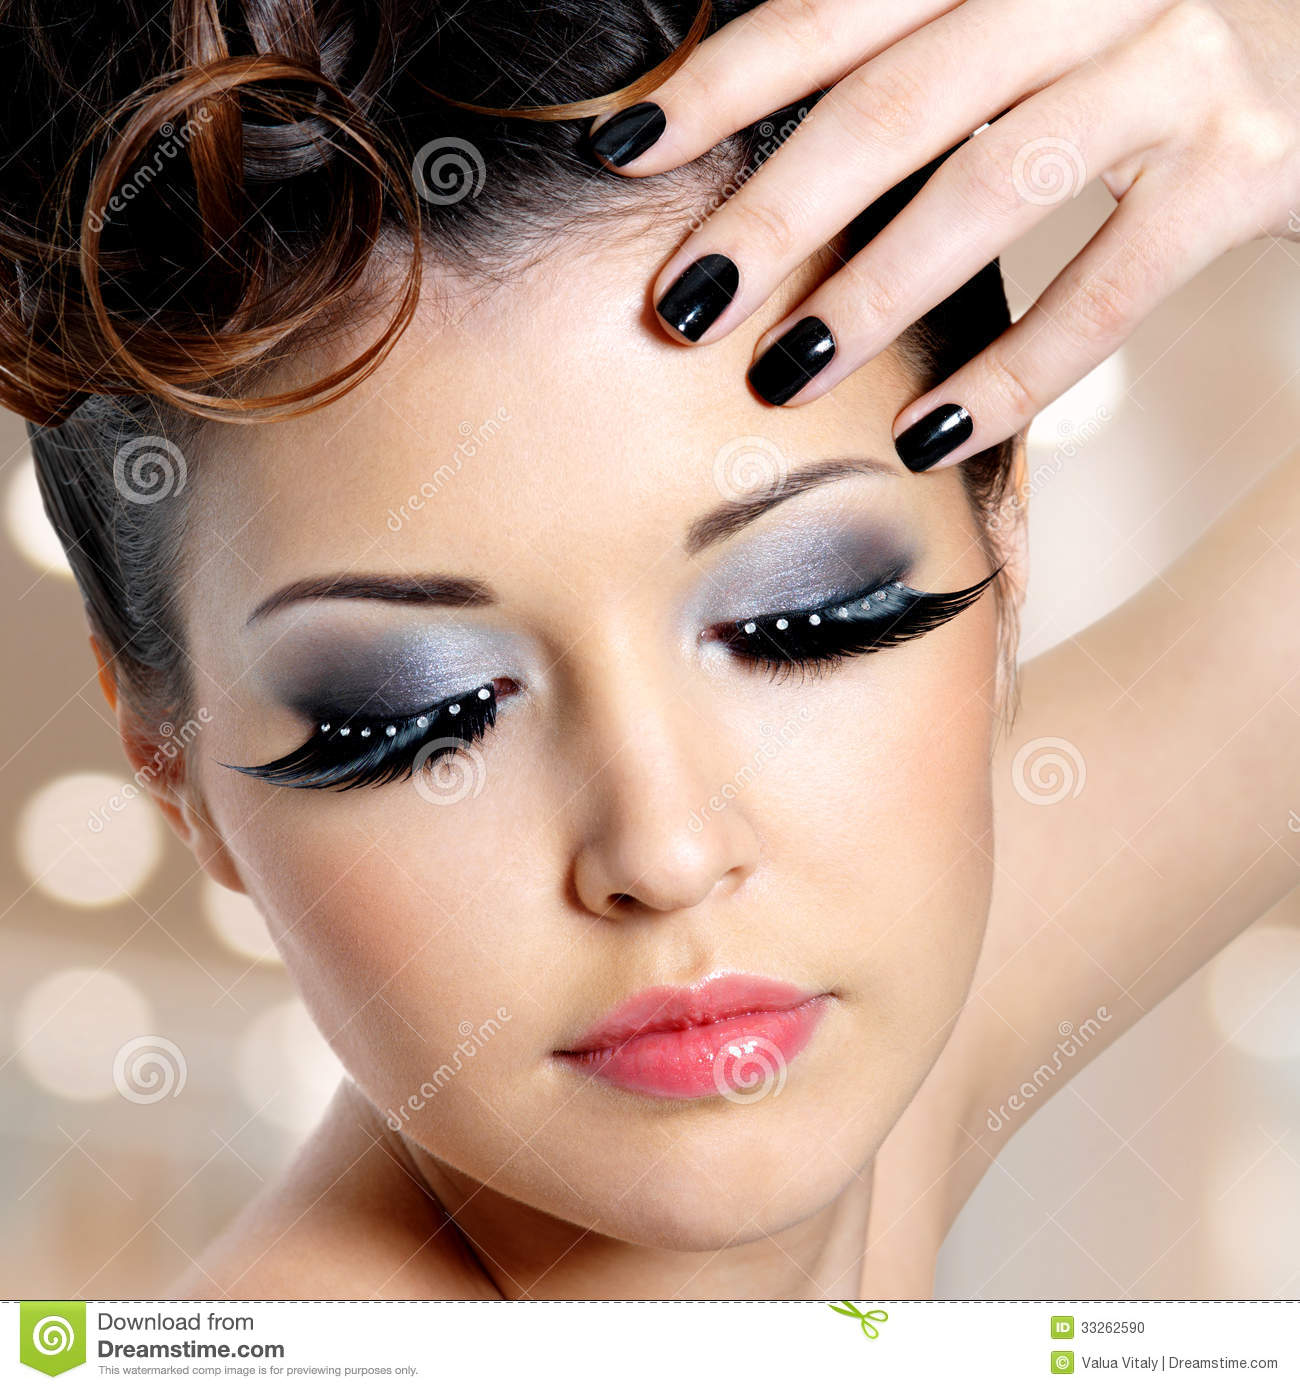 Face Of Woman With Fashion Eye Makeup Stock Photo - Image 33262590